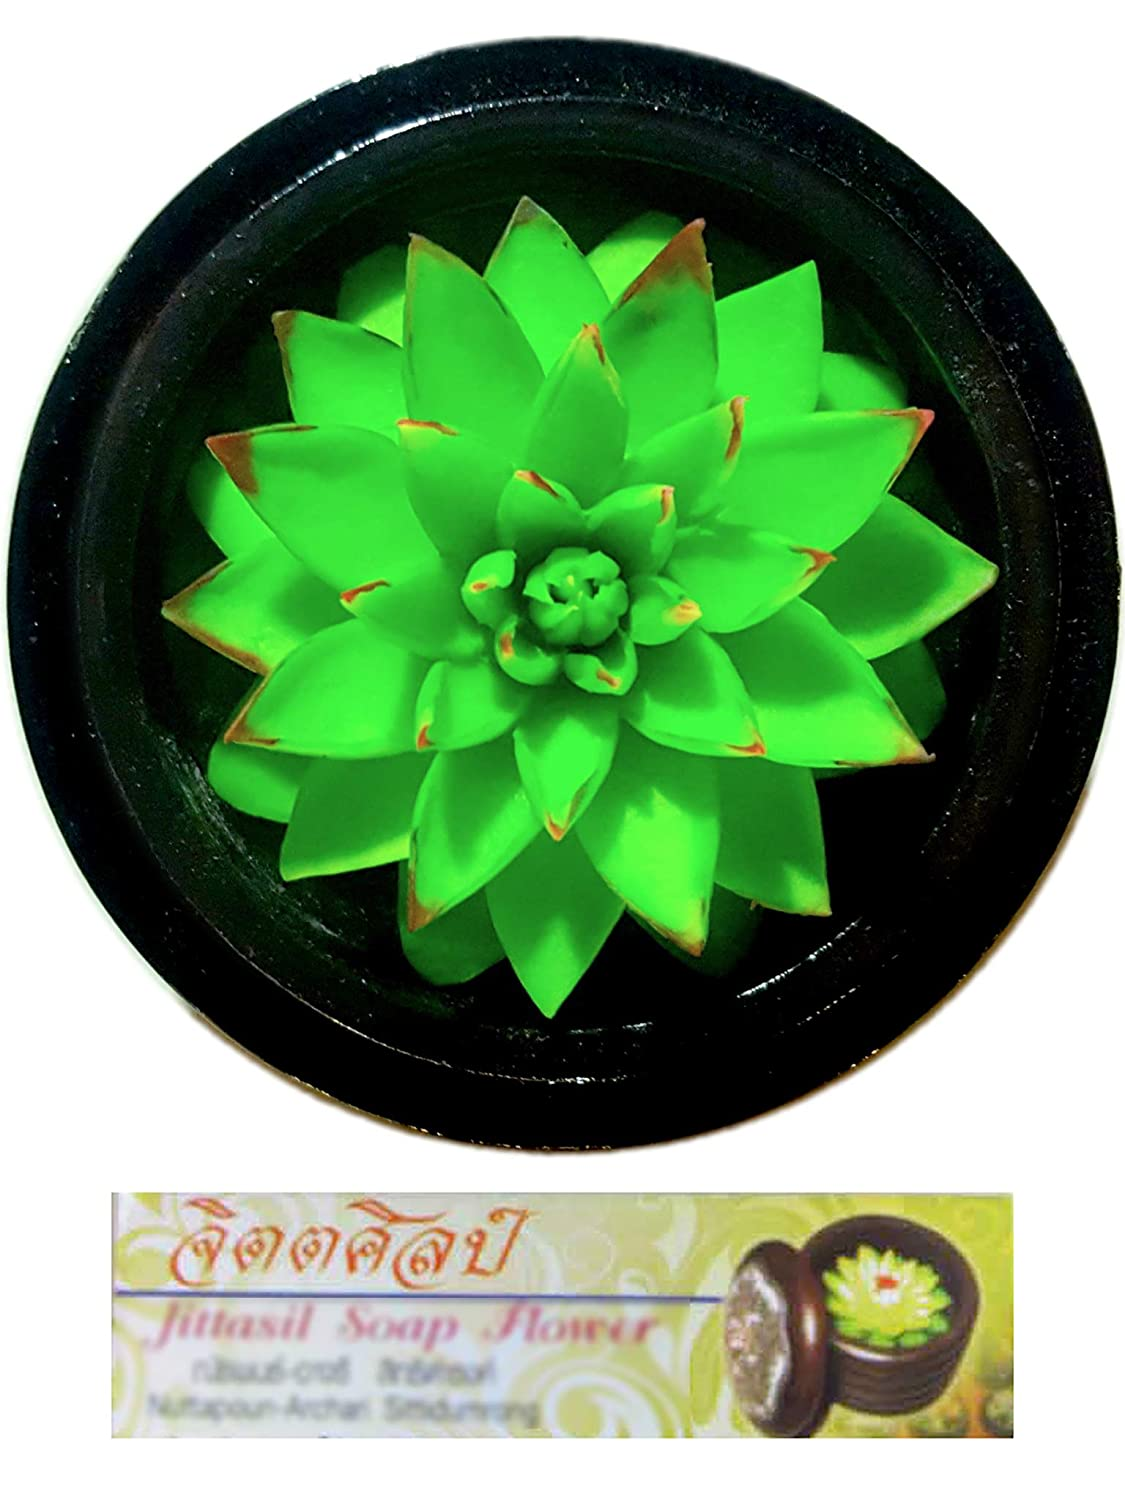 Jittasil Thai Hand-Carved Soap Cactus, 4 Inch Scented Soap Carving, Succulent (Agave) JITCact002